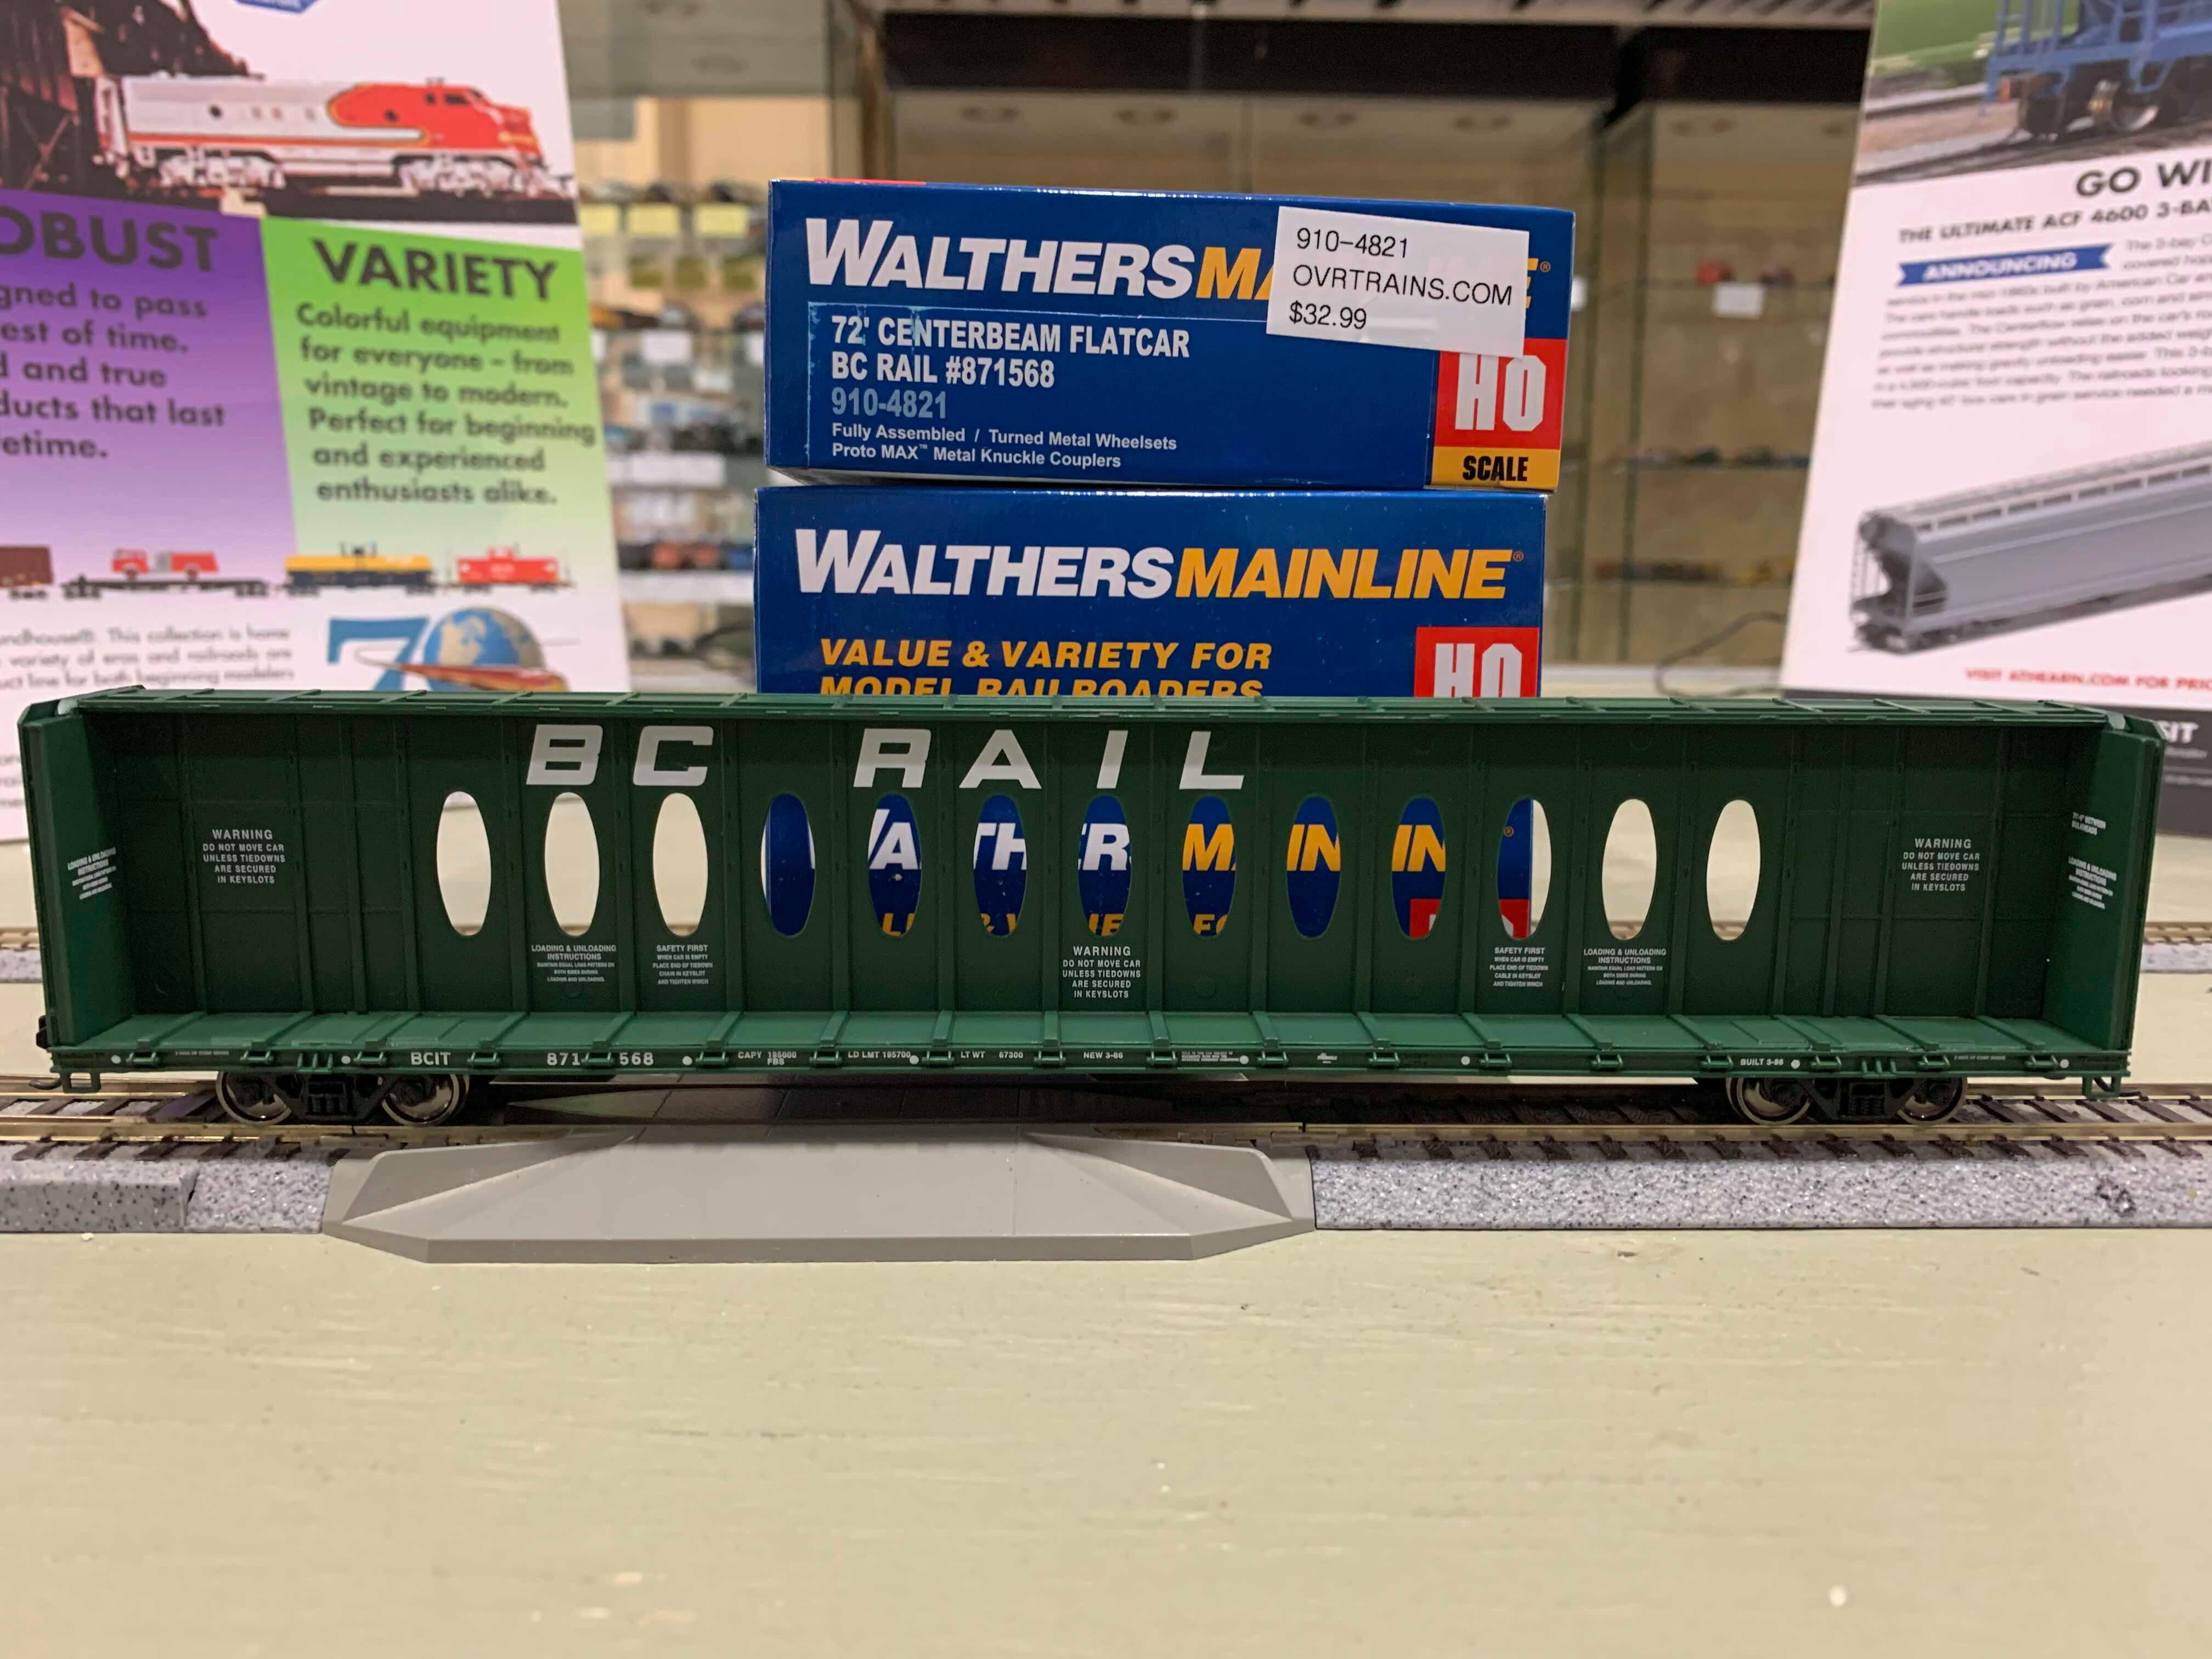 WalthersMainline 4820 HO - 72Ft Centerbeam Flatcar with Opera Windows - Ready to Run - BC Rail #871579